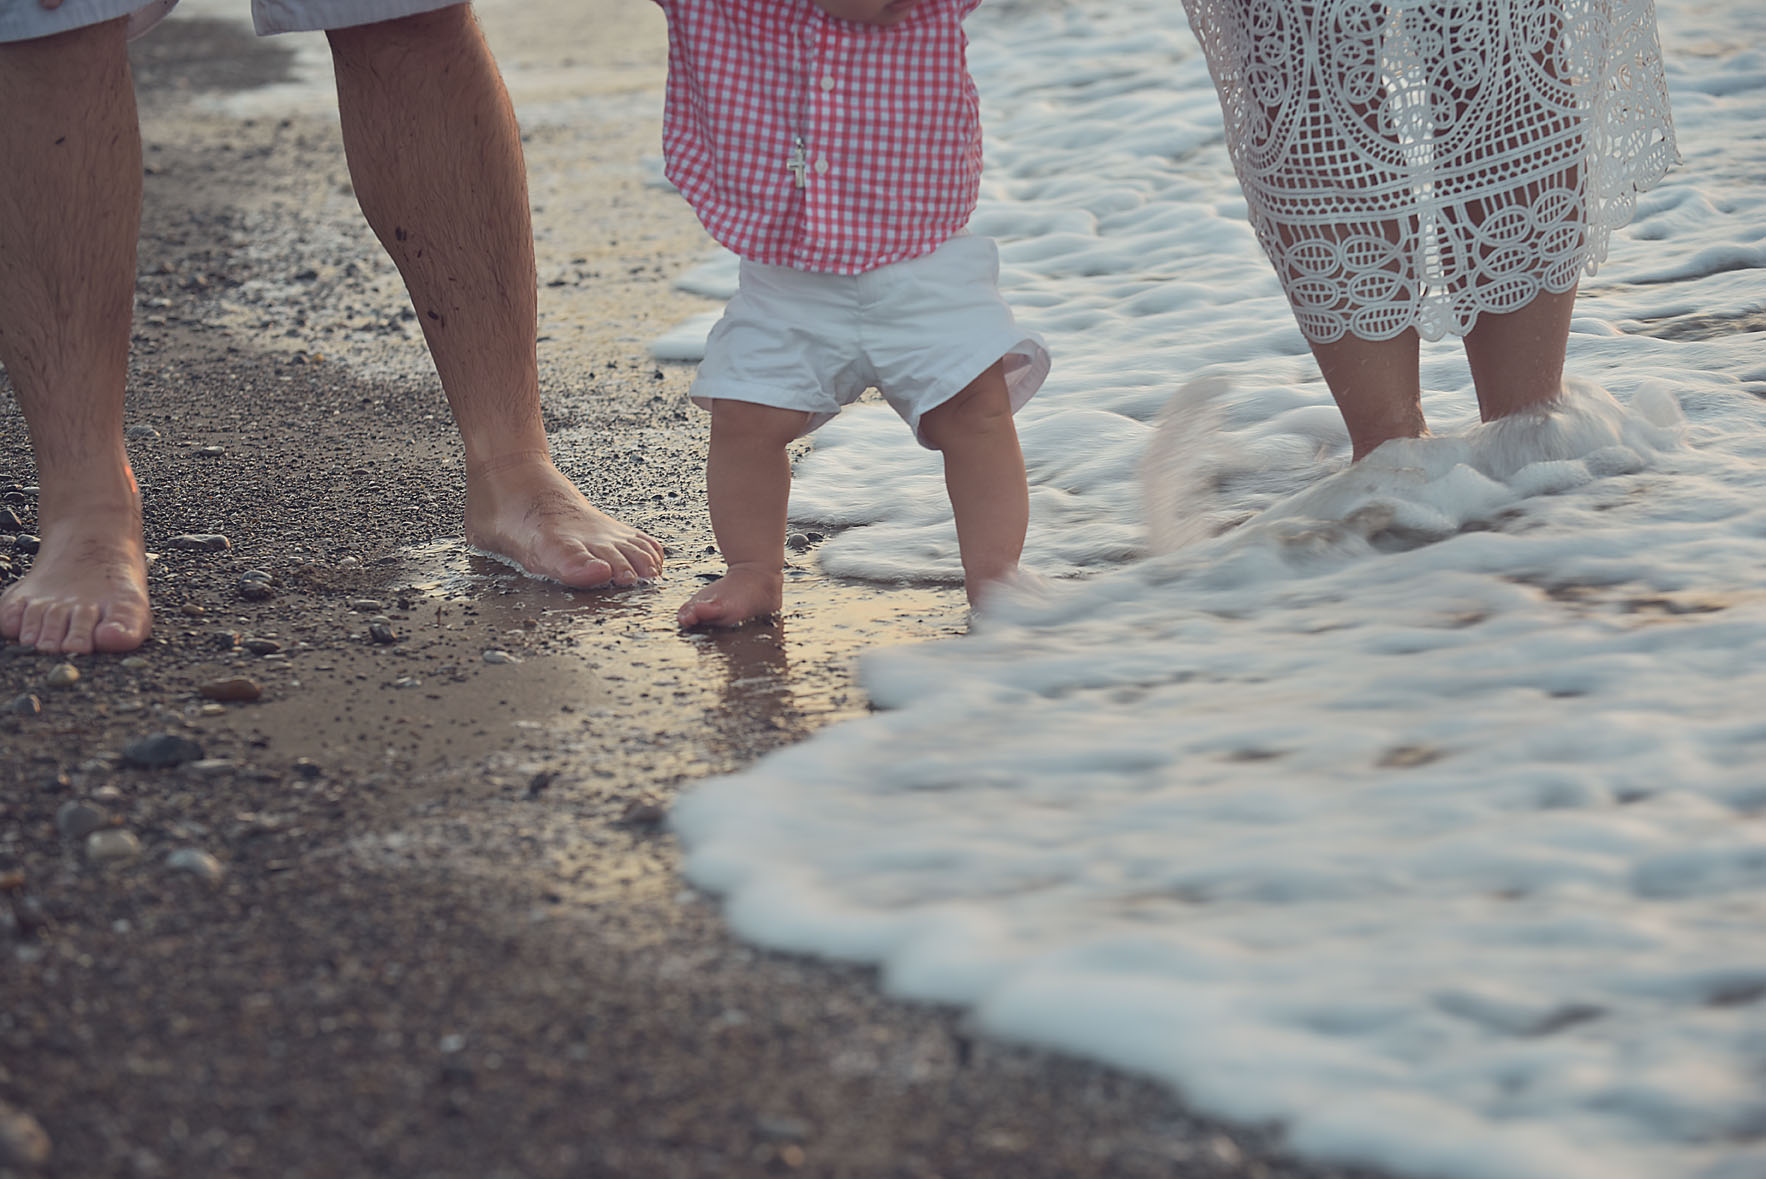 Baptism-chios-island-from-newyork-kambos-christening-sea-details-03